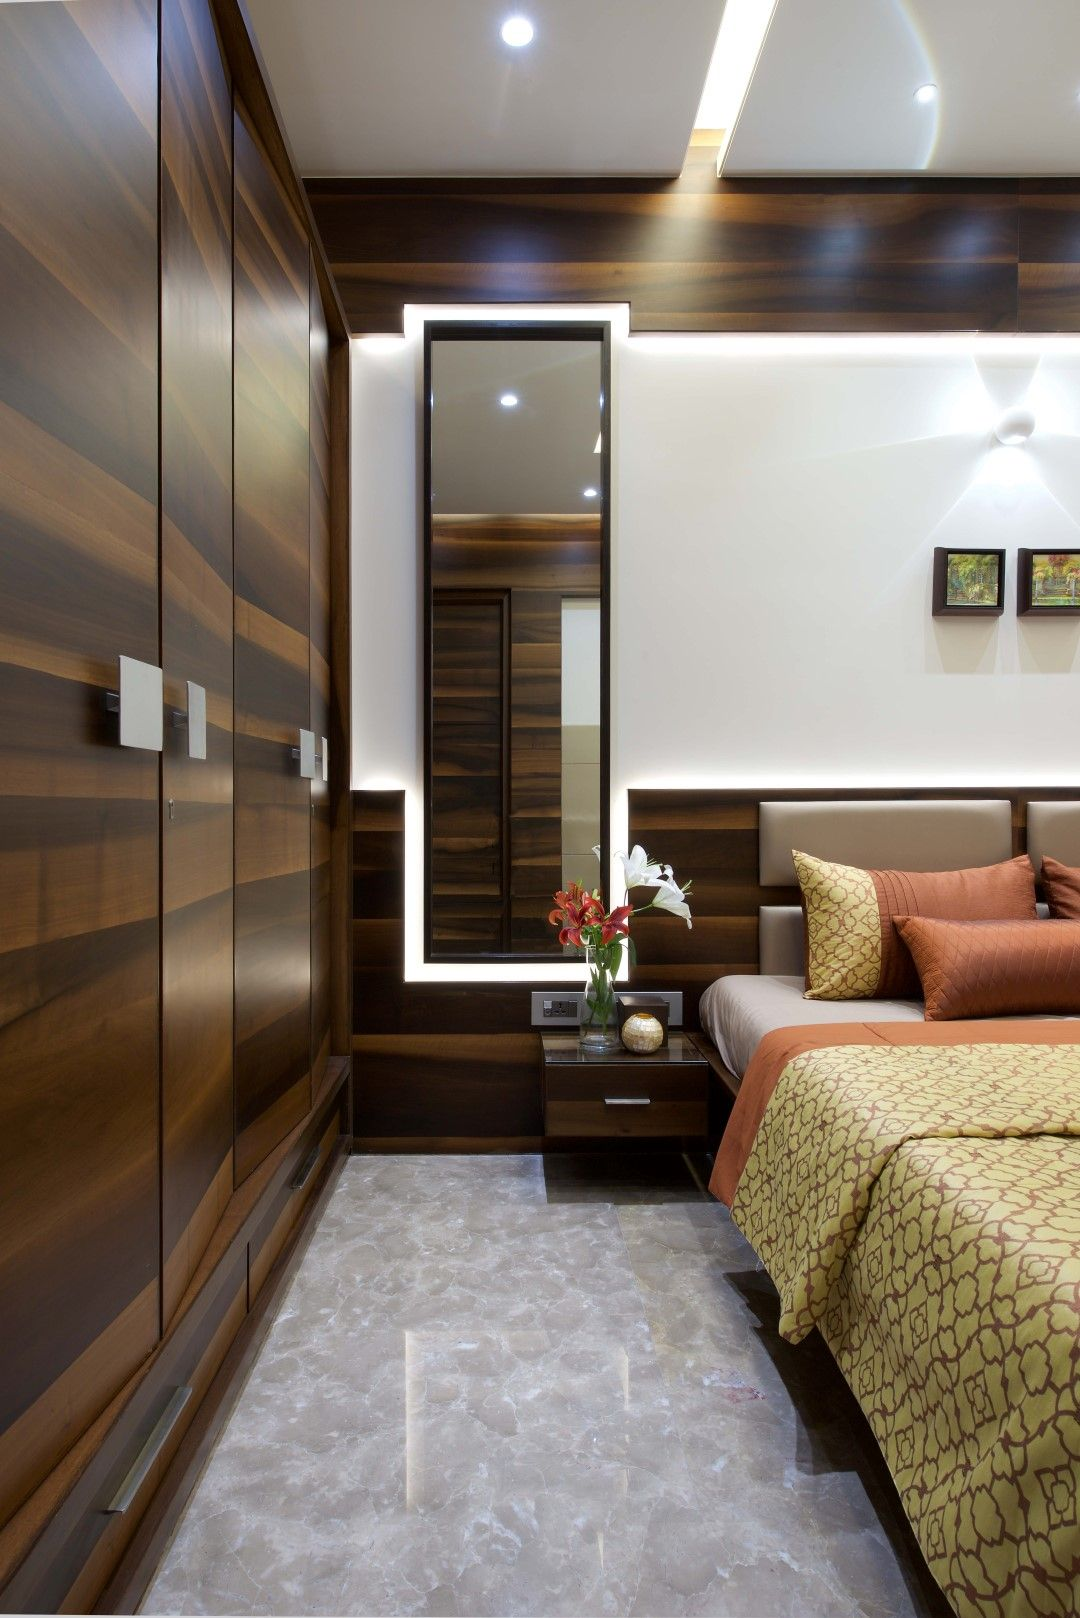 Luxury bedroom with mirror contemporary modern interiordesign bedroom design ideas laminate wardrobe 3 bhk